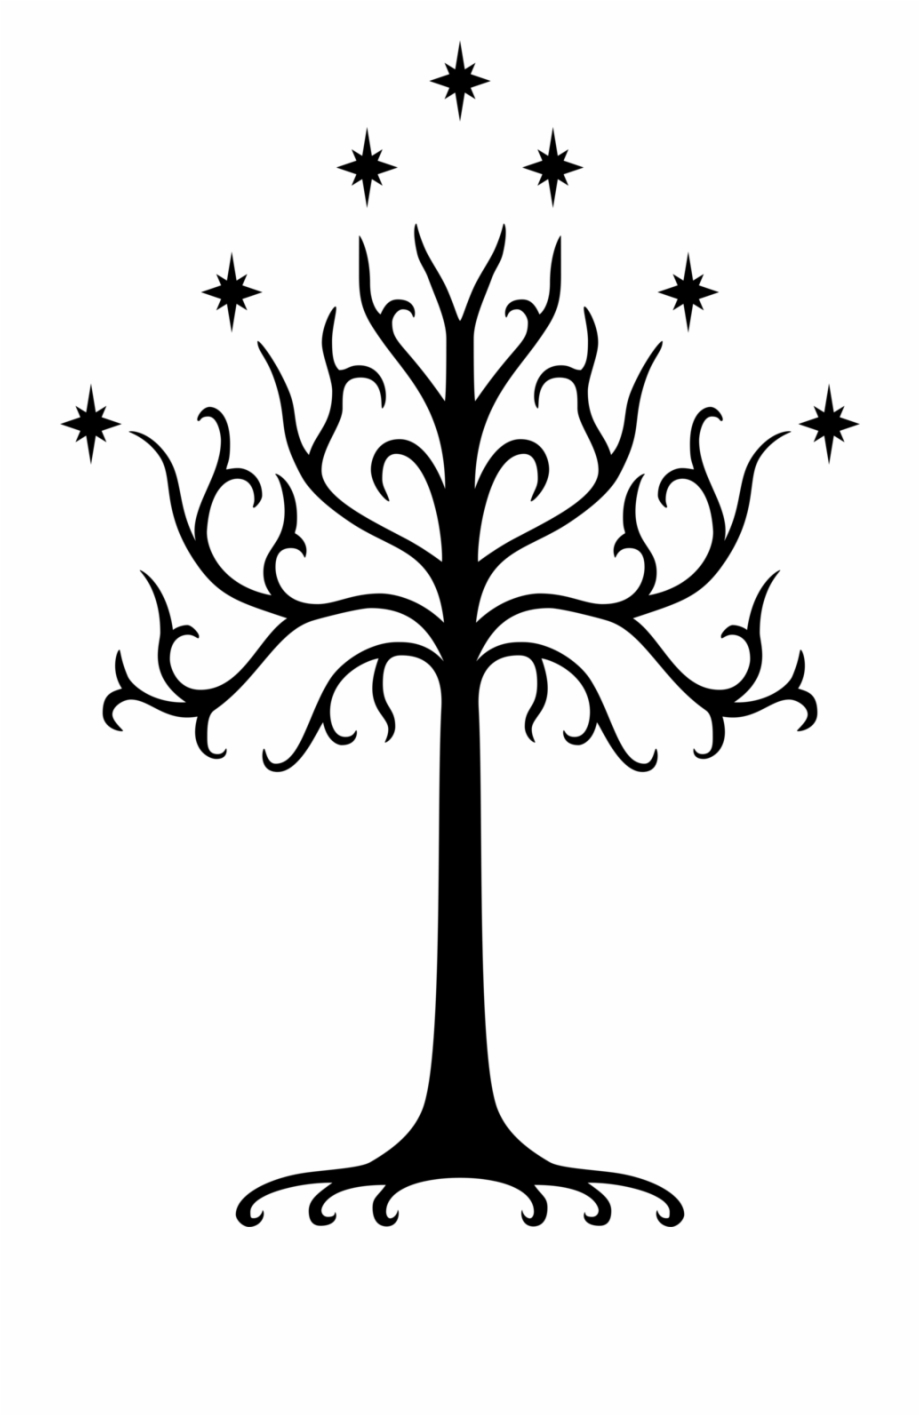 Lord Of The Rings Tree Symbol.